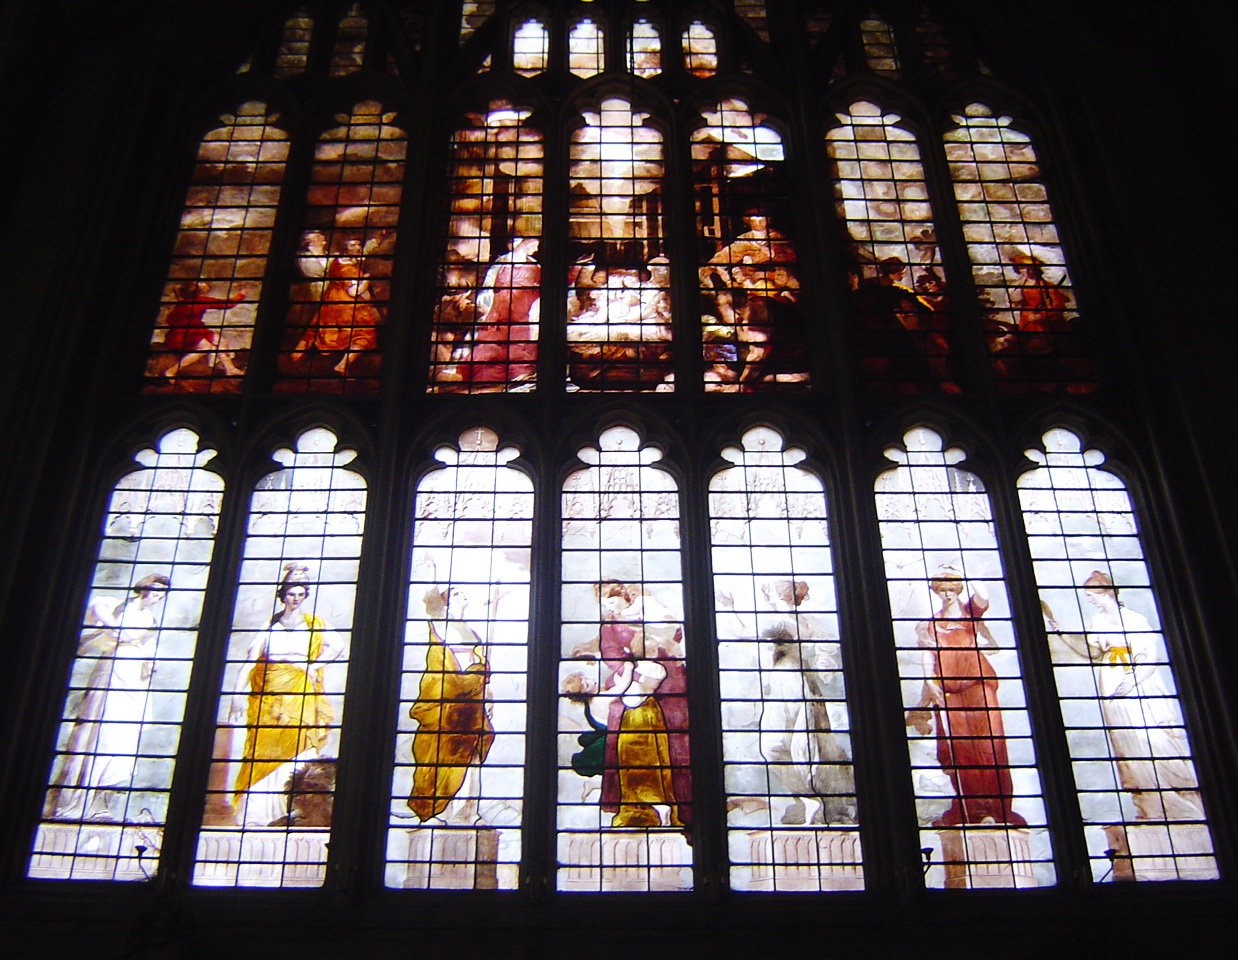 A large stained glass windows with biblical paintings.